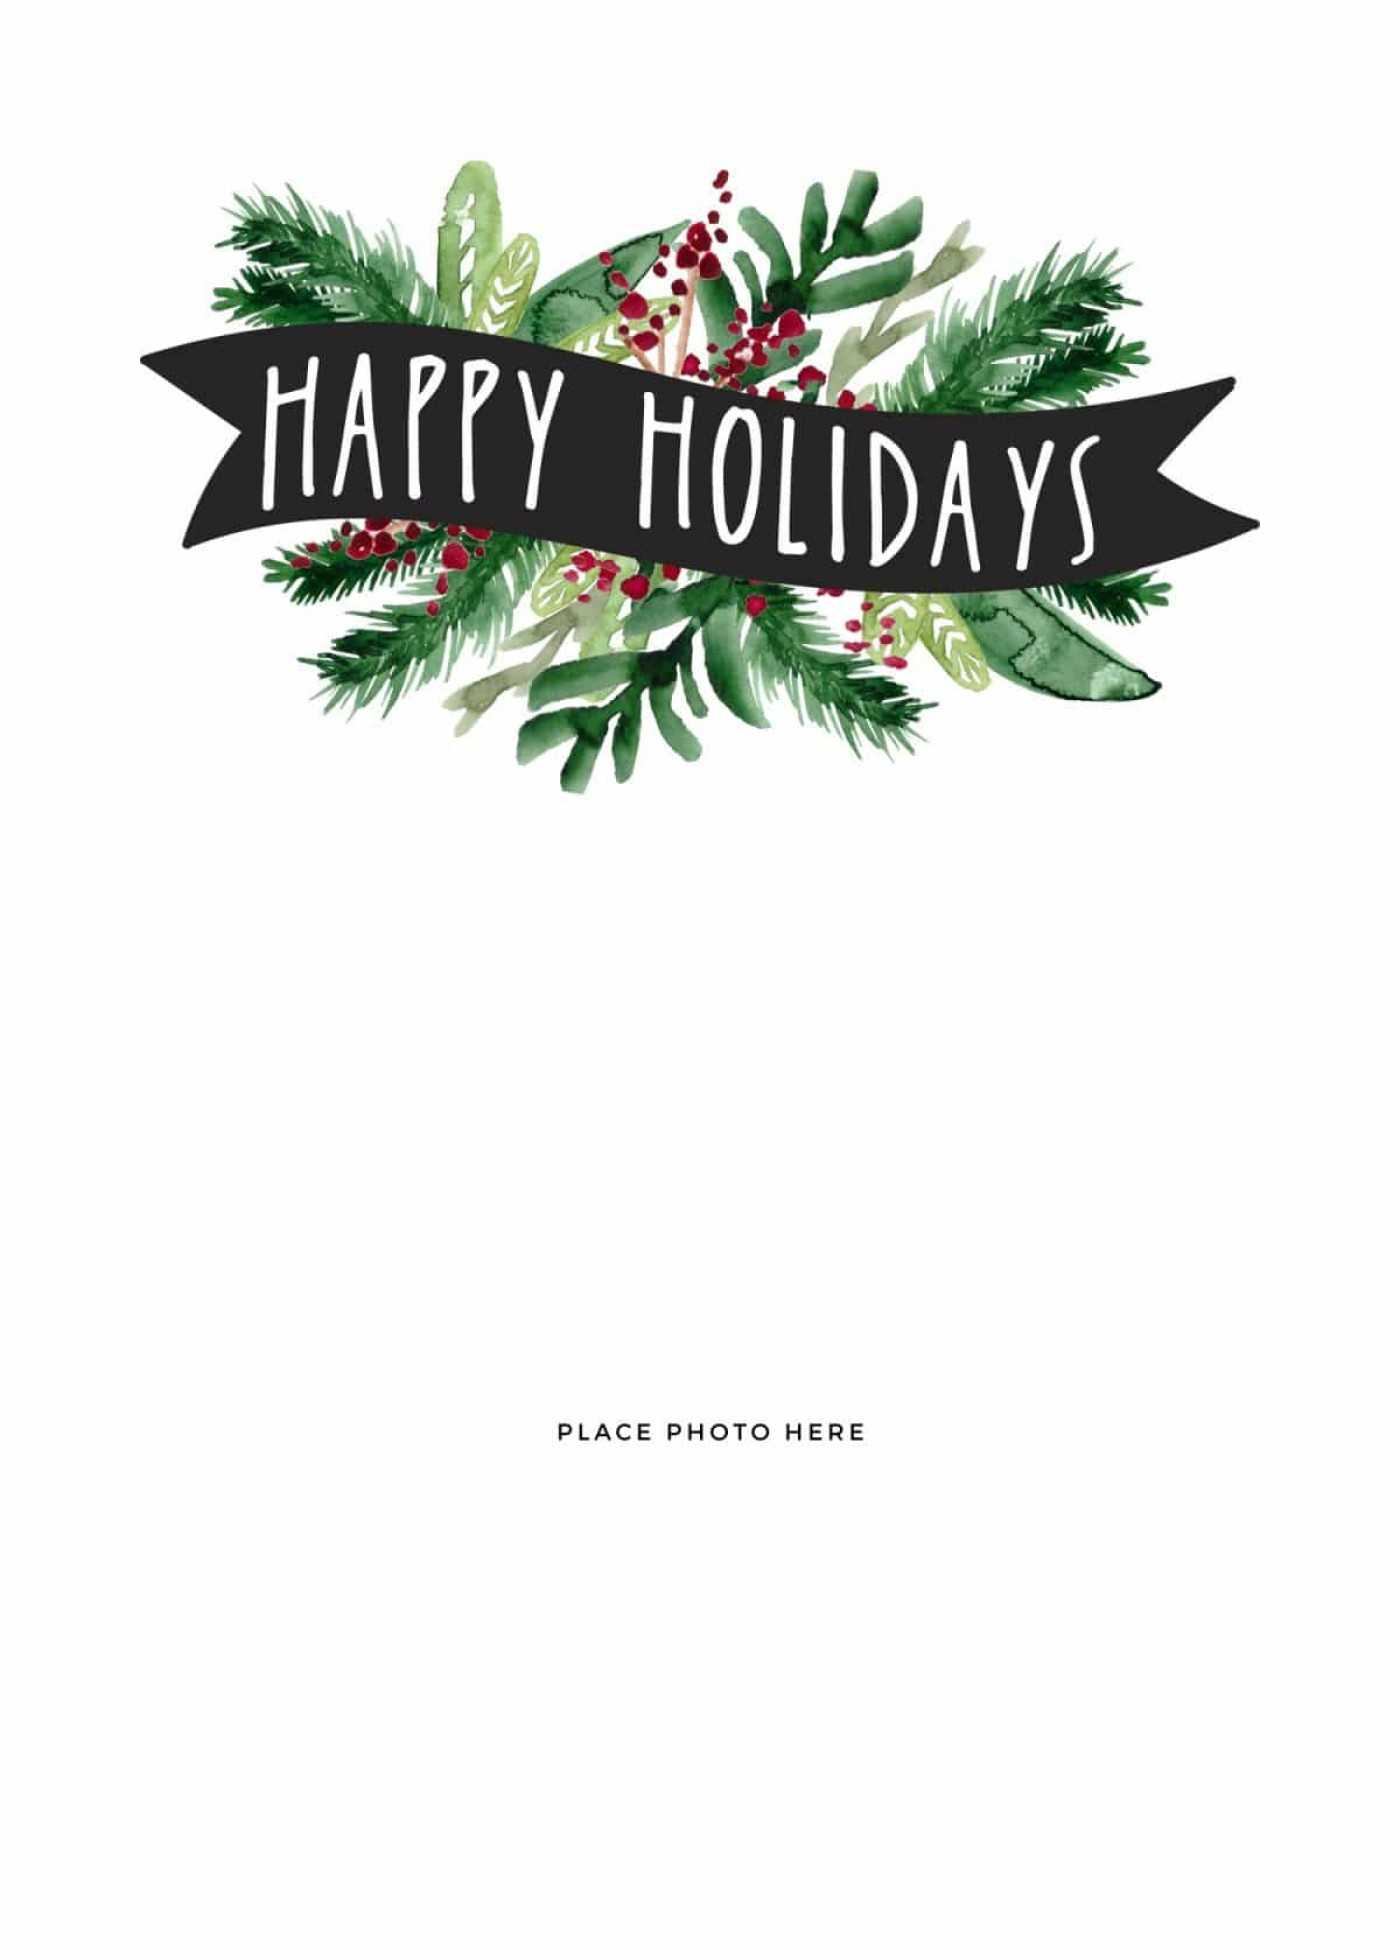 027 Template Ideas Free Holiday Card Templates For Photoshop Pertaining To Happy Holidays Card Template